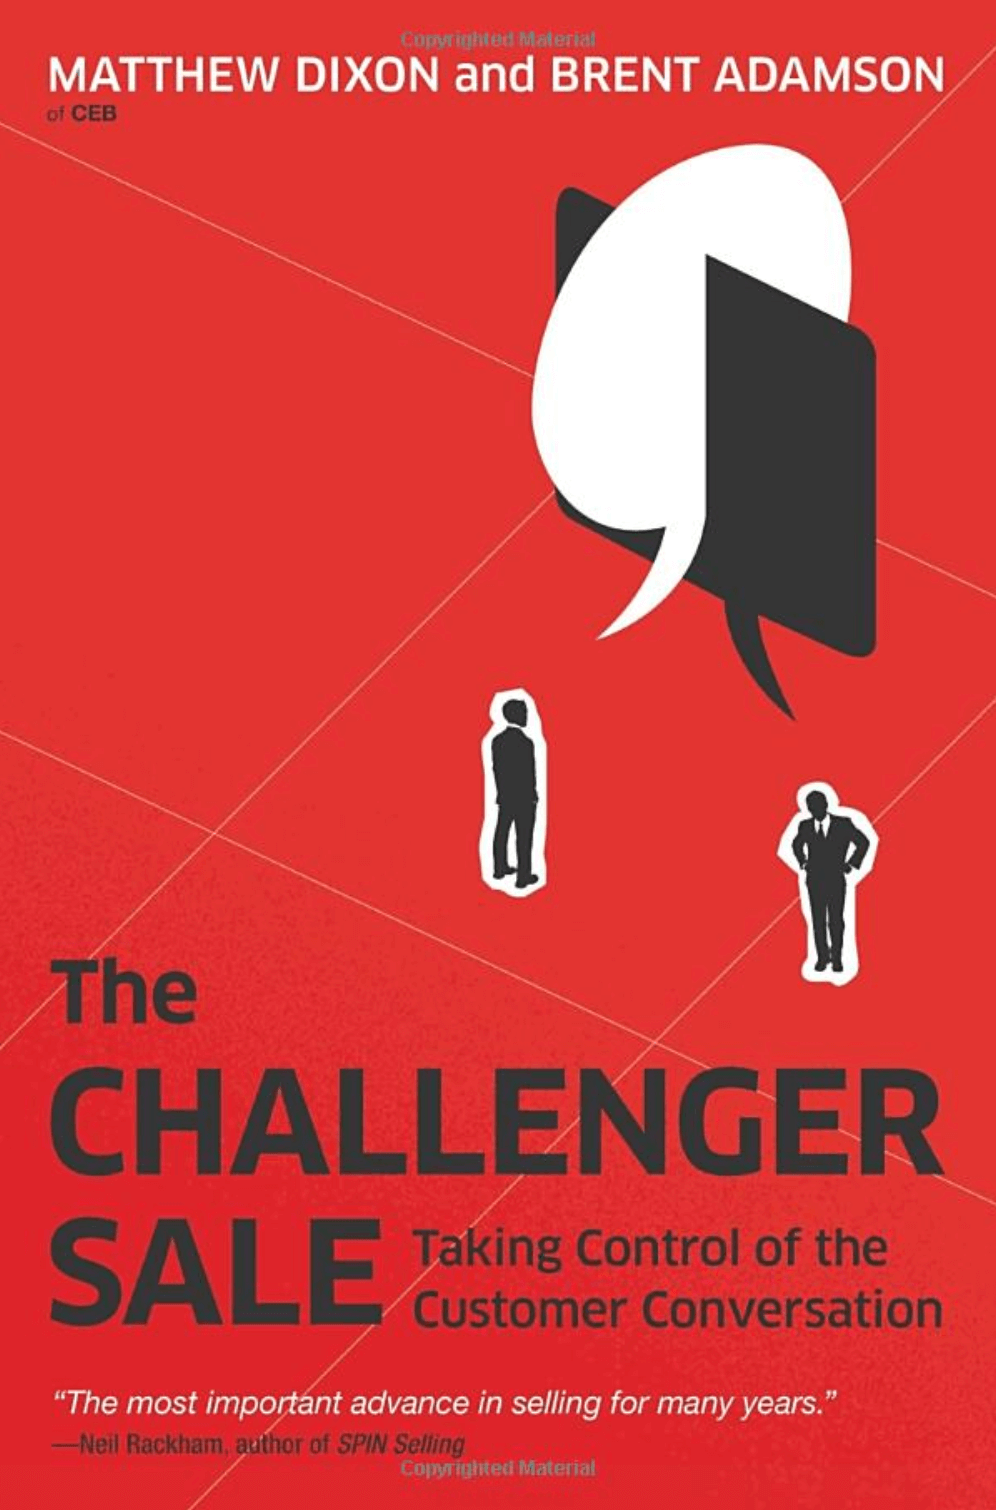 "Saleslabel.com_""The Challenger Sale: Taking Control of the Customer Conversation"" by Matthew Dixon and Brent Adamson"